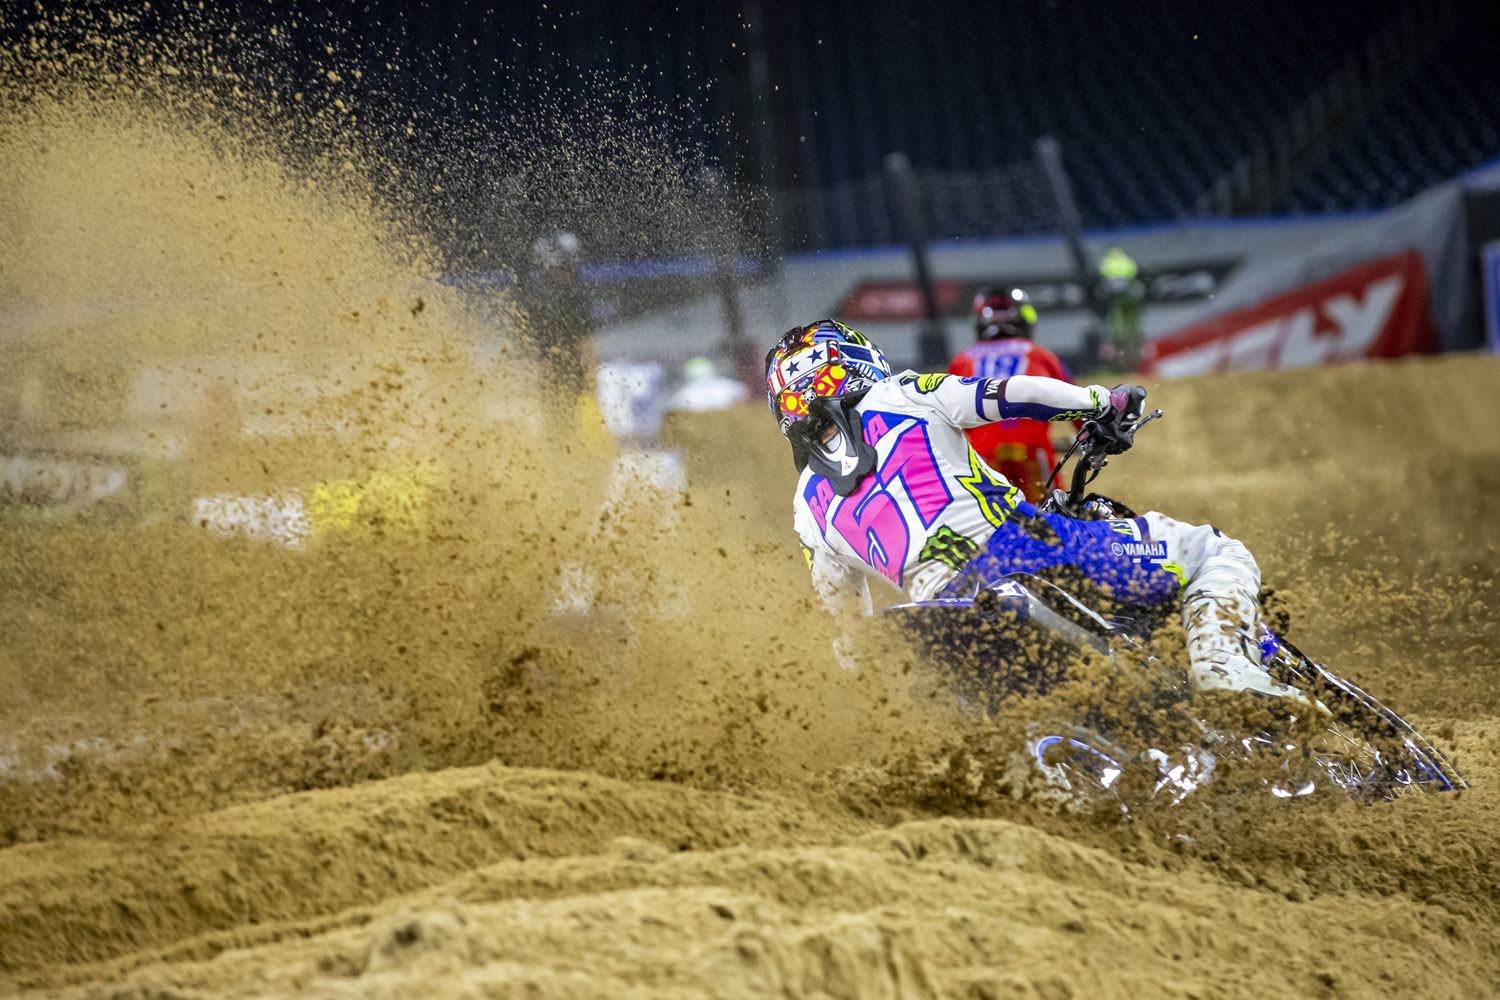 BARCIA_2019_HOUSTON_SX_web.jpg